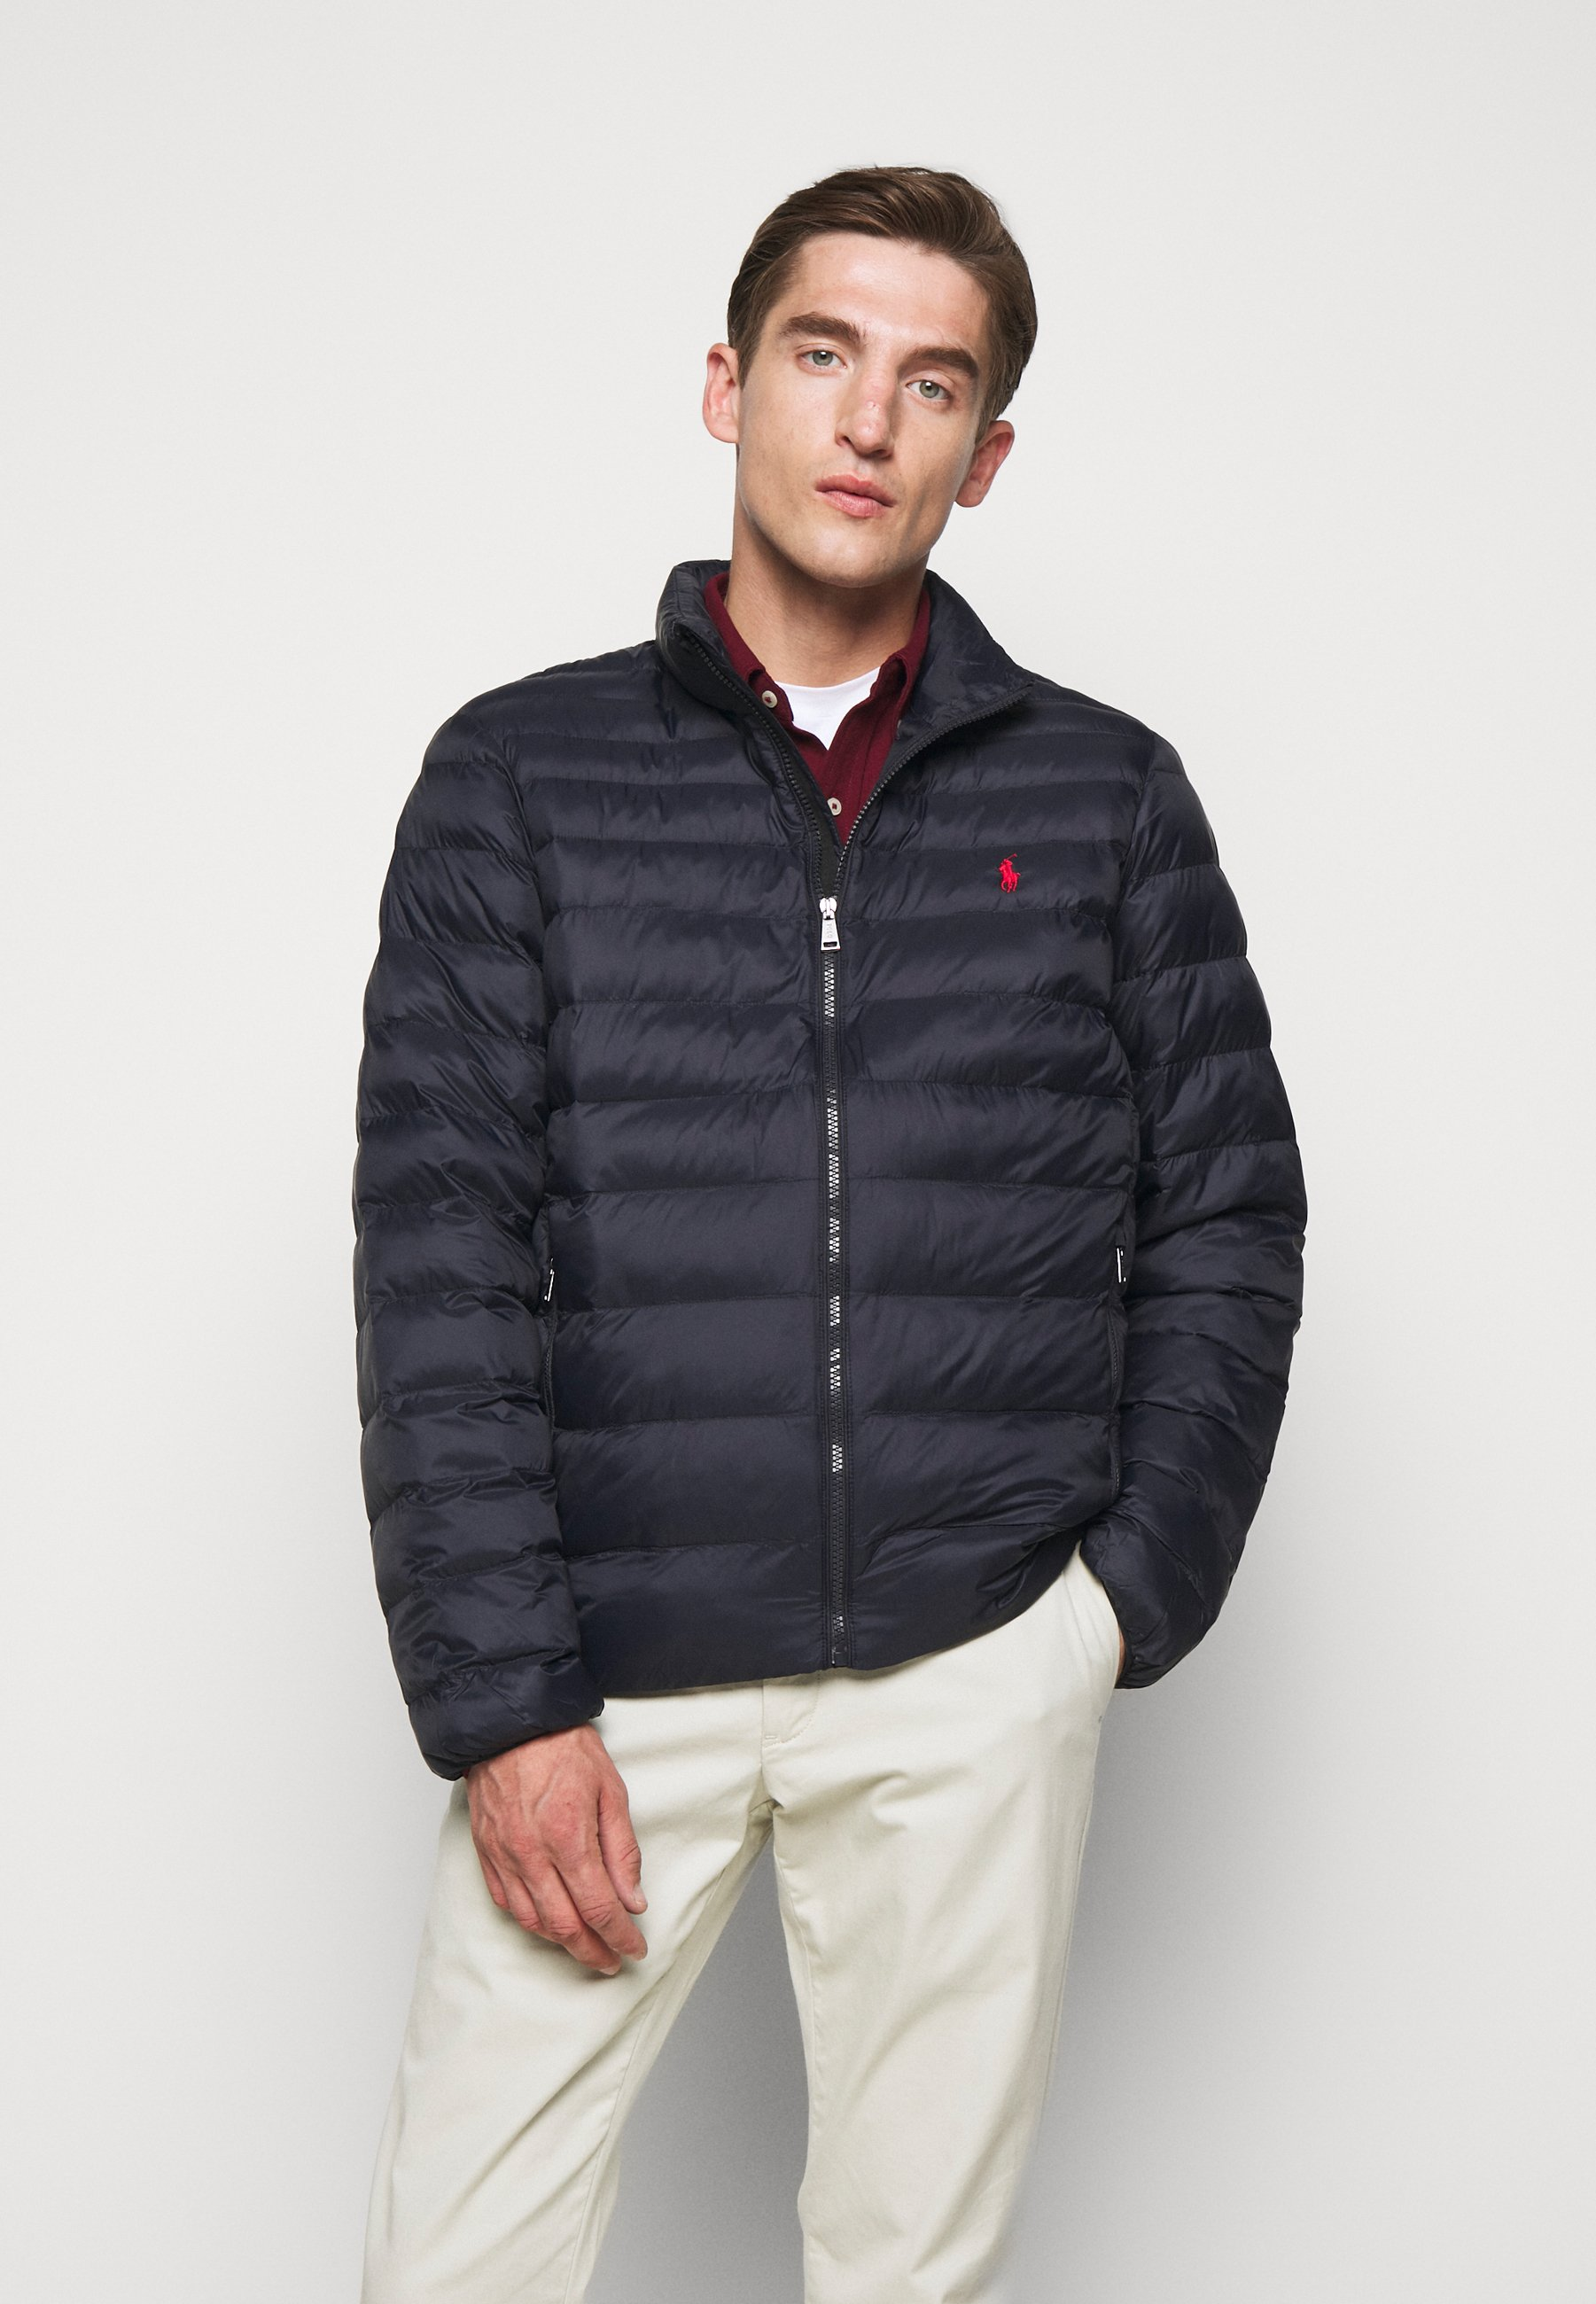 Polo ralph lauren winter vest philosophy in the age of reason chapter 17 investments